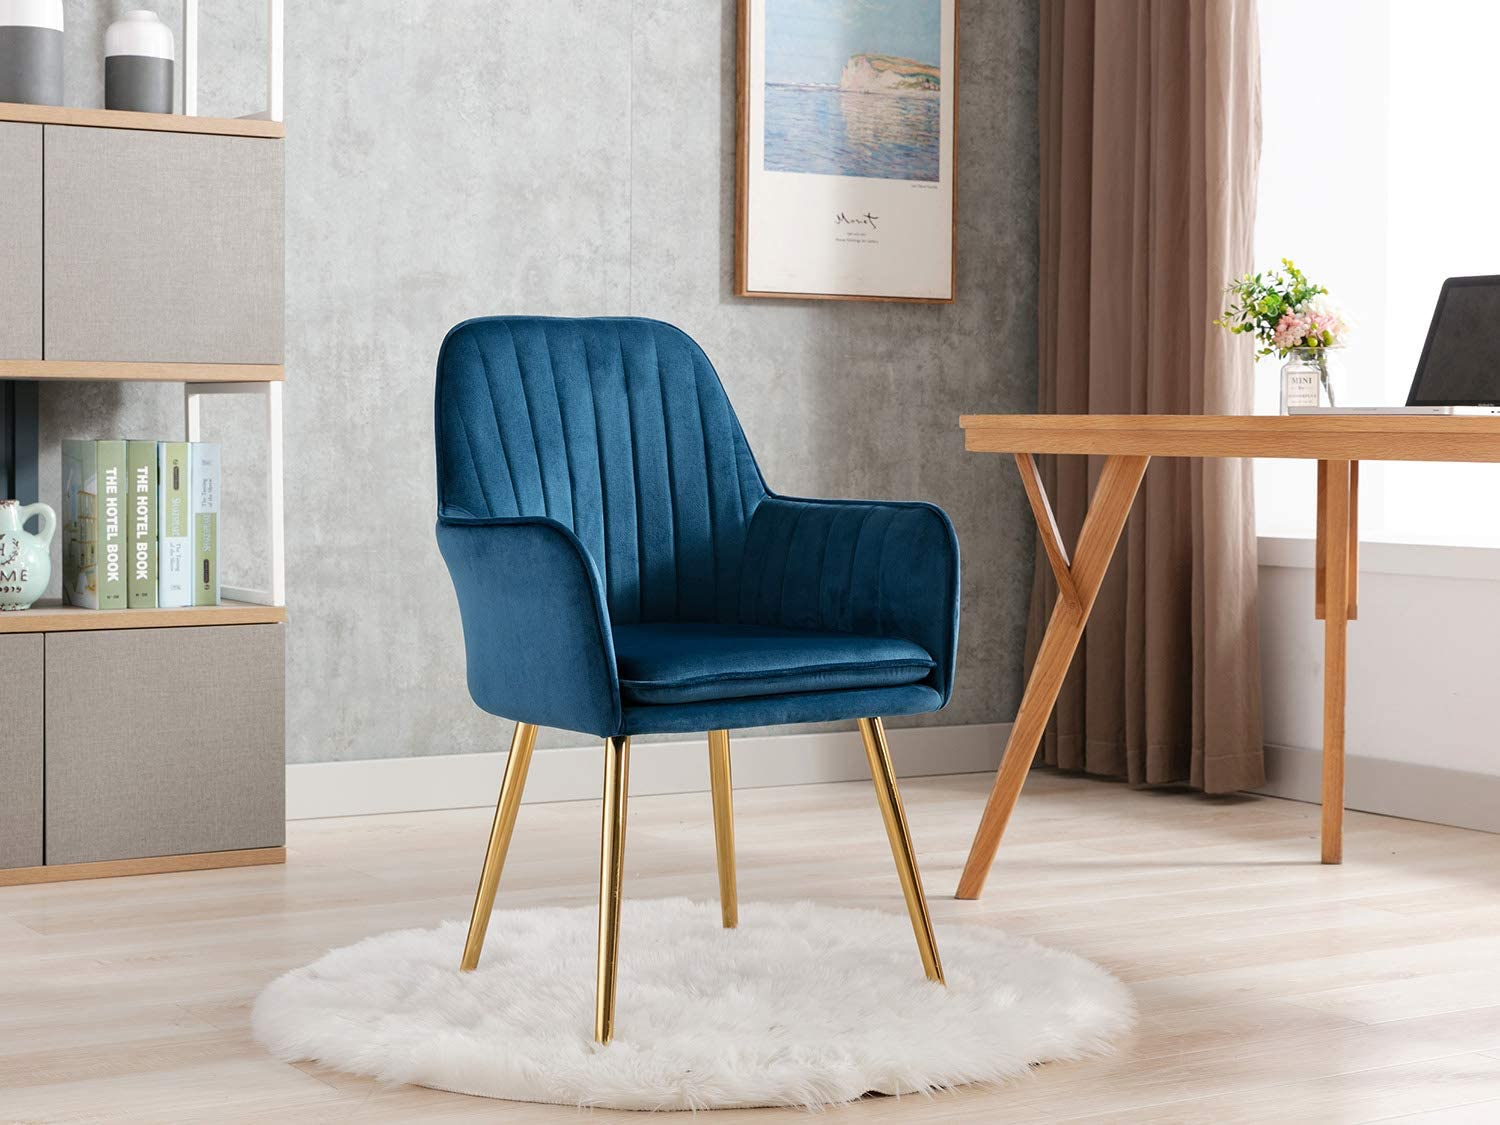 Amazon Com Altrobene Velvet Accent Chair Home Office Desk Chair Modern Dinging Chair Living Room Bedroom Chair Golden Finished Blue Kitchen Dining